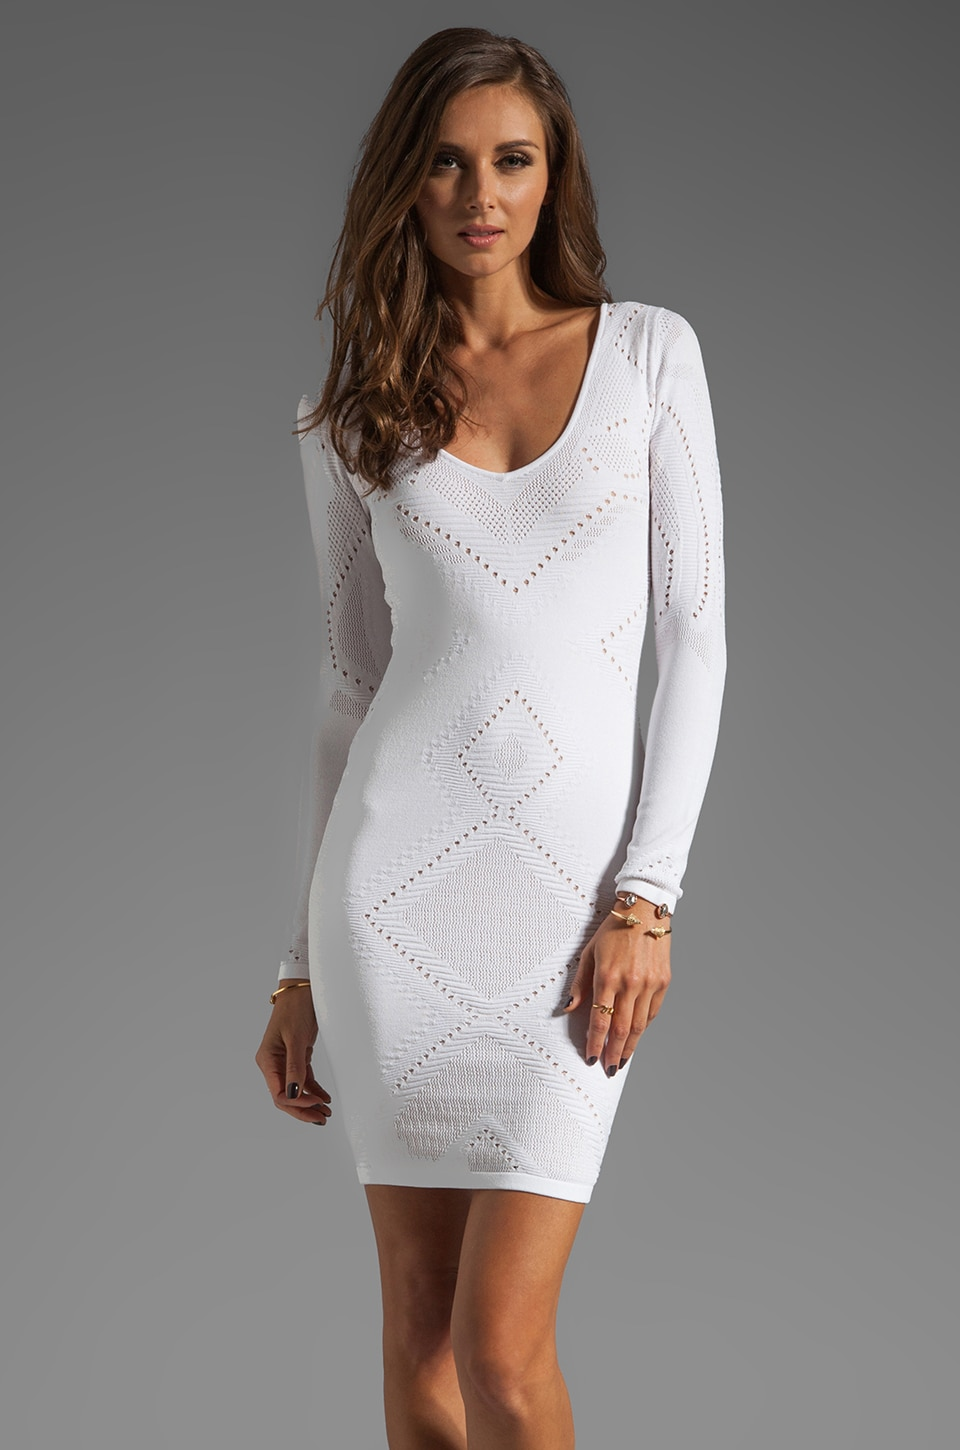 Catherine Malandrino Long Sleeve Boat Neck Dress in Blanc